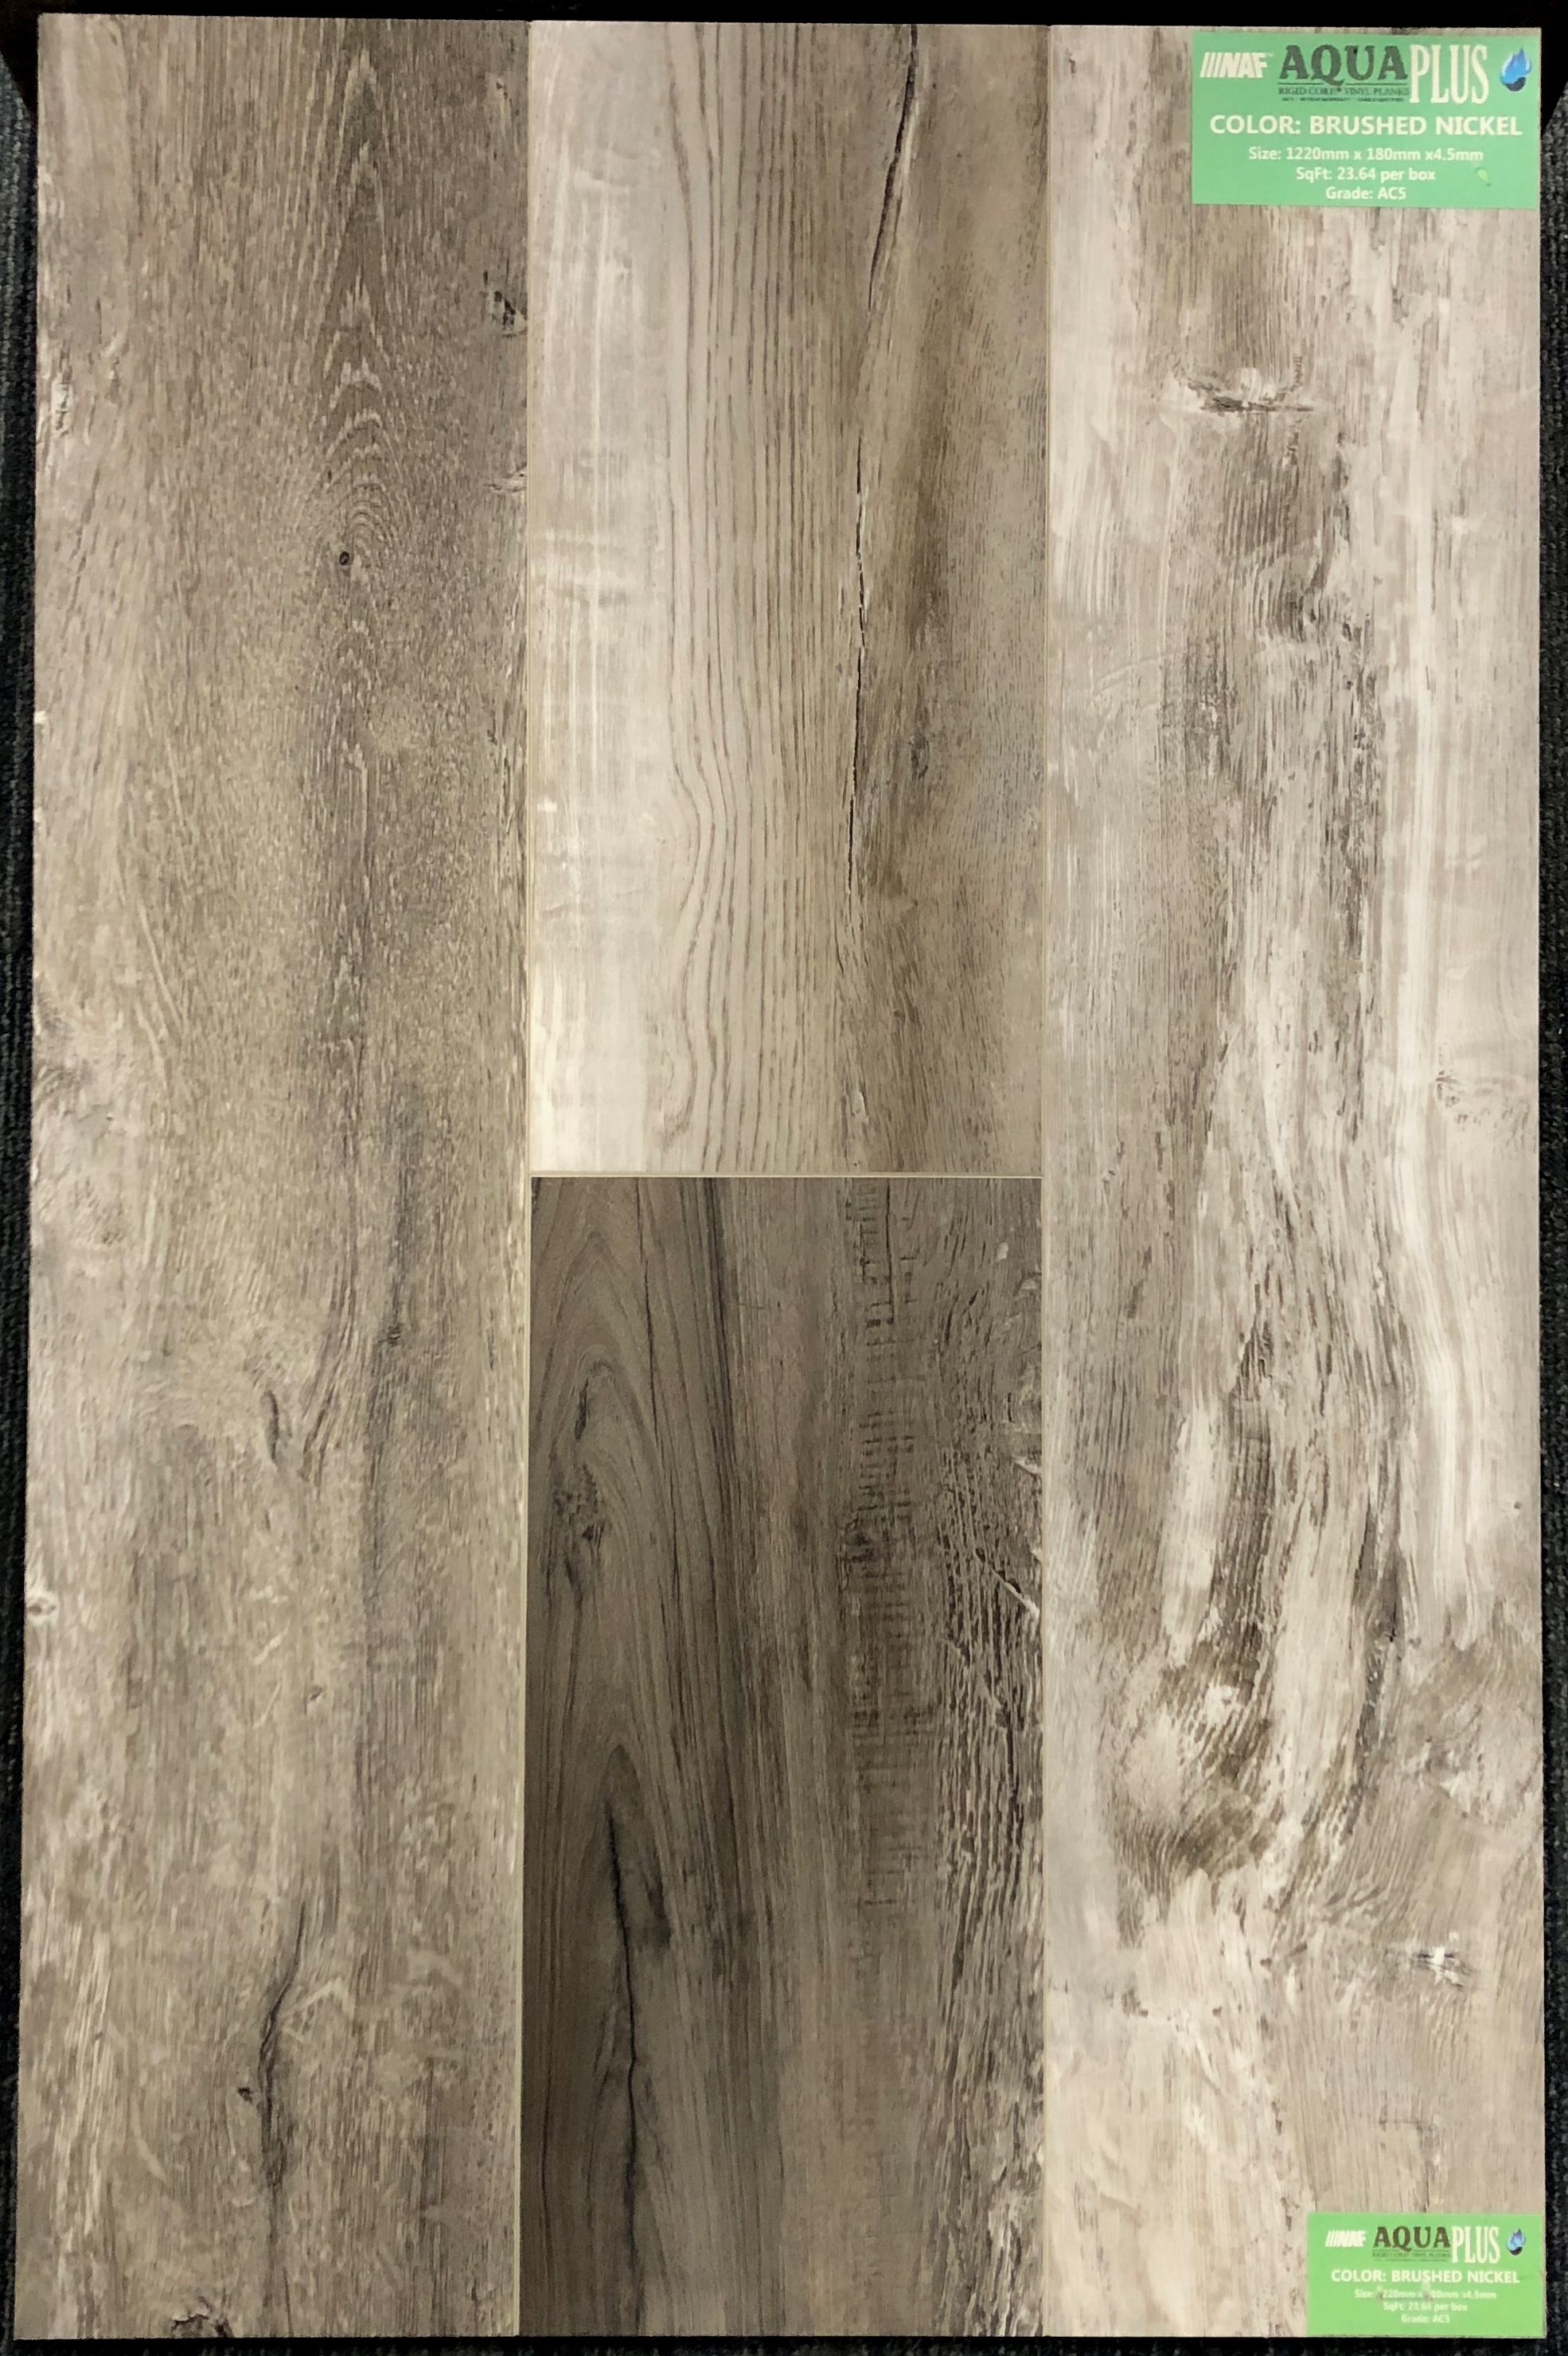 Brushed Nickel NAF Aquafloor 4.5MM Vinyl Flooring Rigid Core - Drop Clic - 0.3mm Wear Layer Image